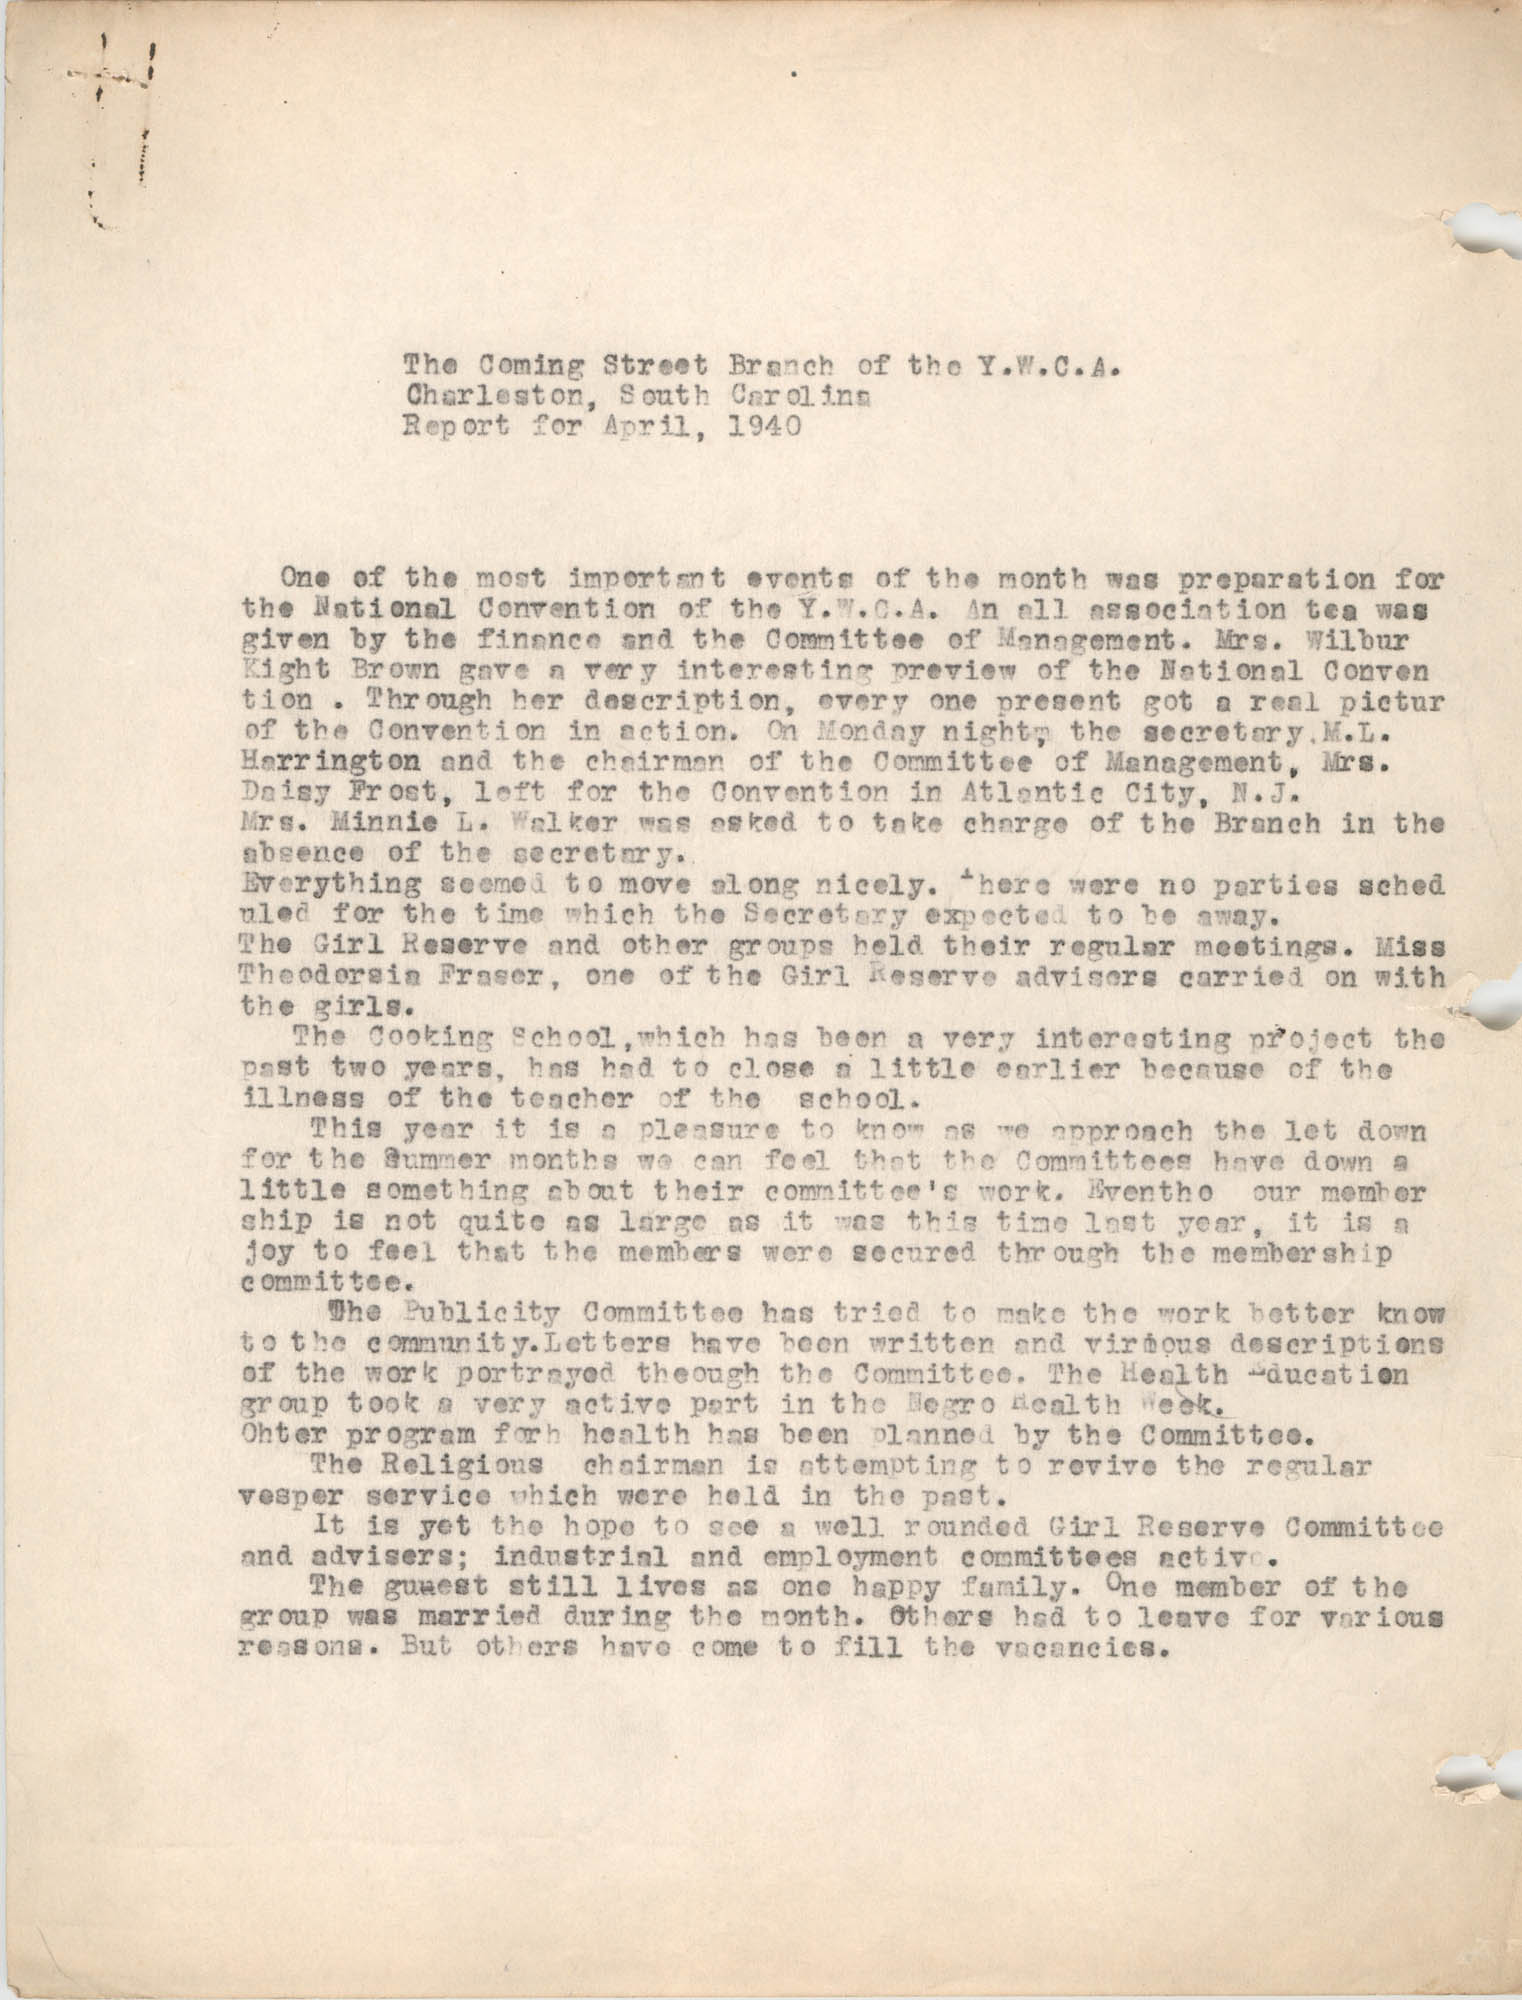 Monthly Report for the Coming Street Y.W.C.A., April 1940